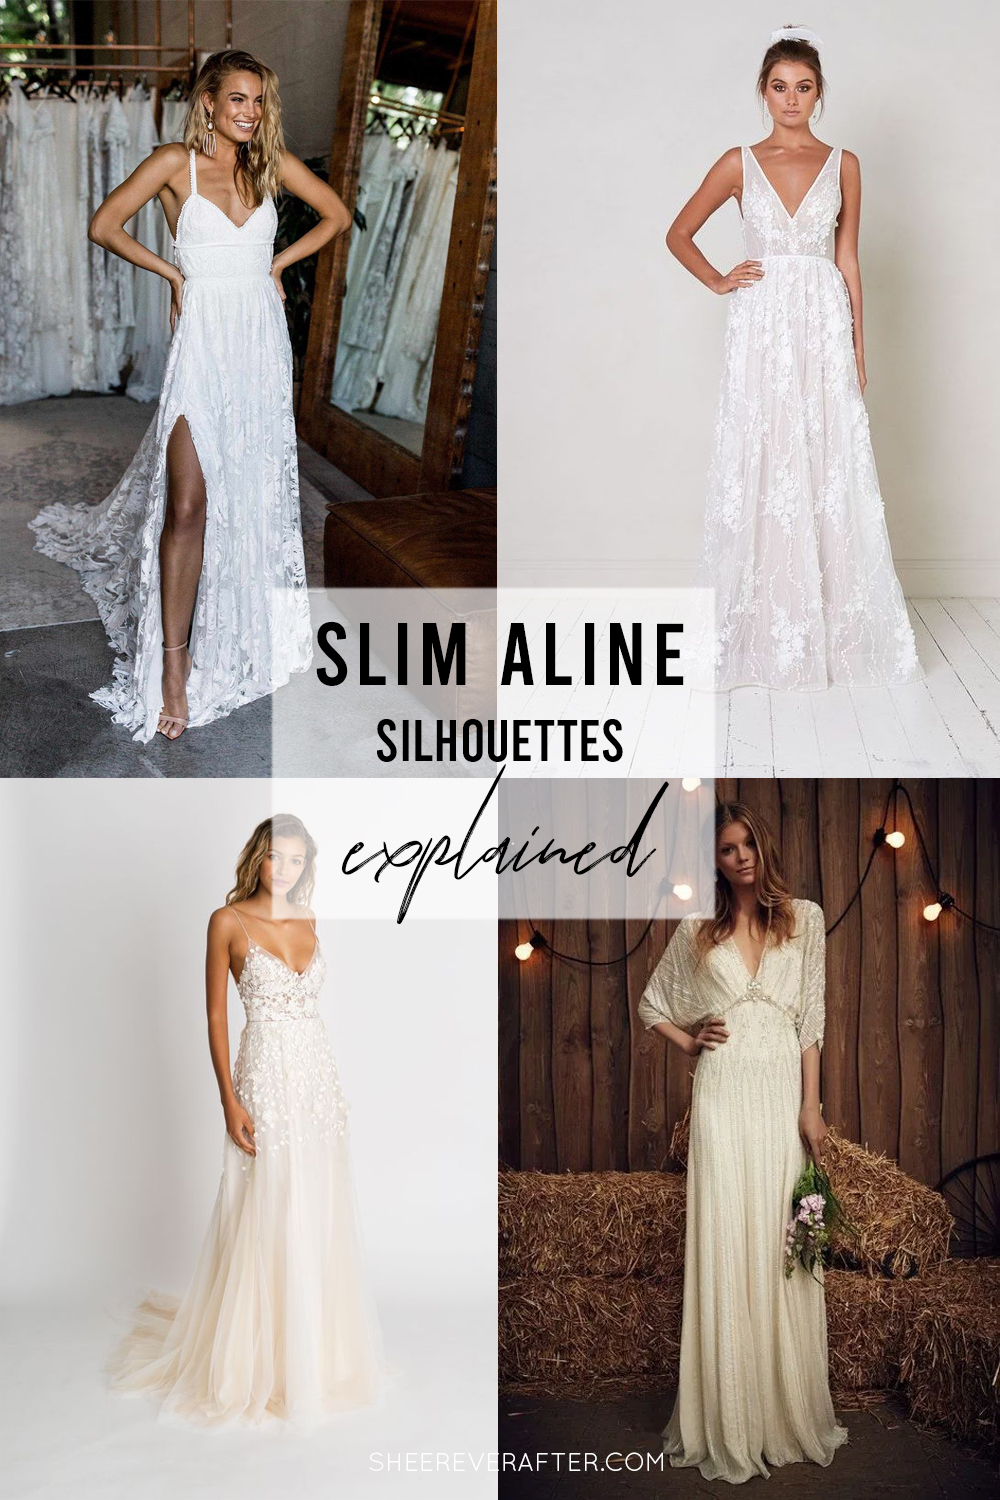 #weddingdress #weddingdresssilhouettes #bridalgown #bridal #weddingday #weddingideas #beautifuldress #aline